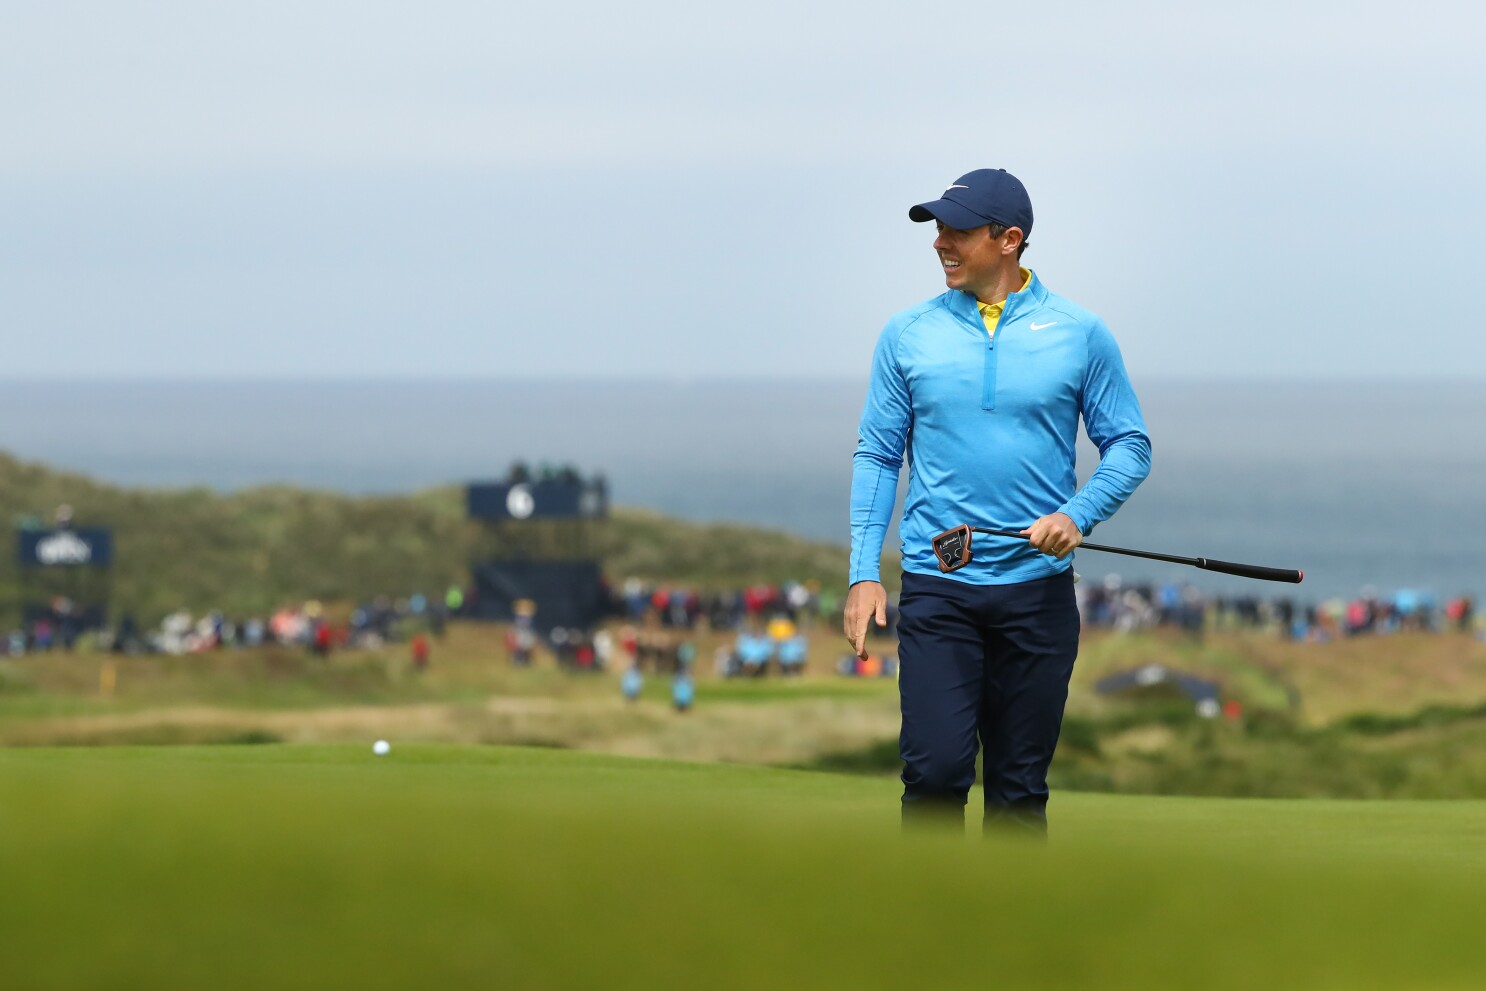 British Open returns 68 years later to a changed Northern Ireland - Los Angeles Times